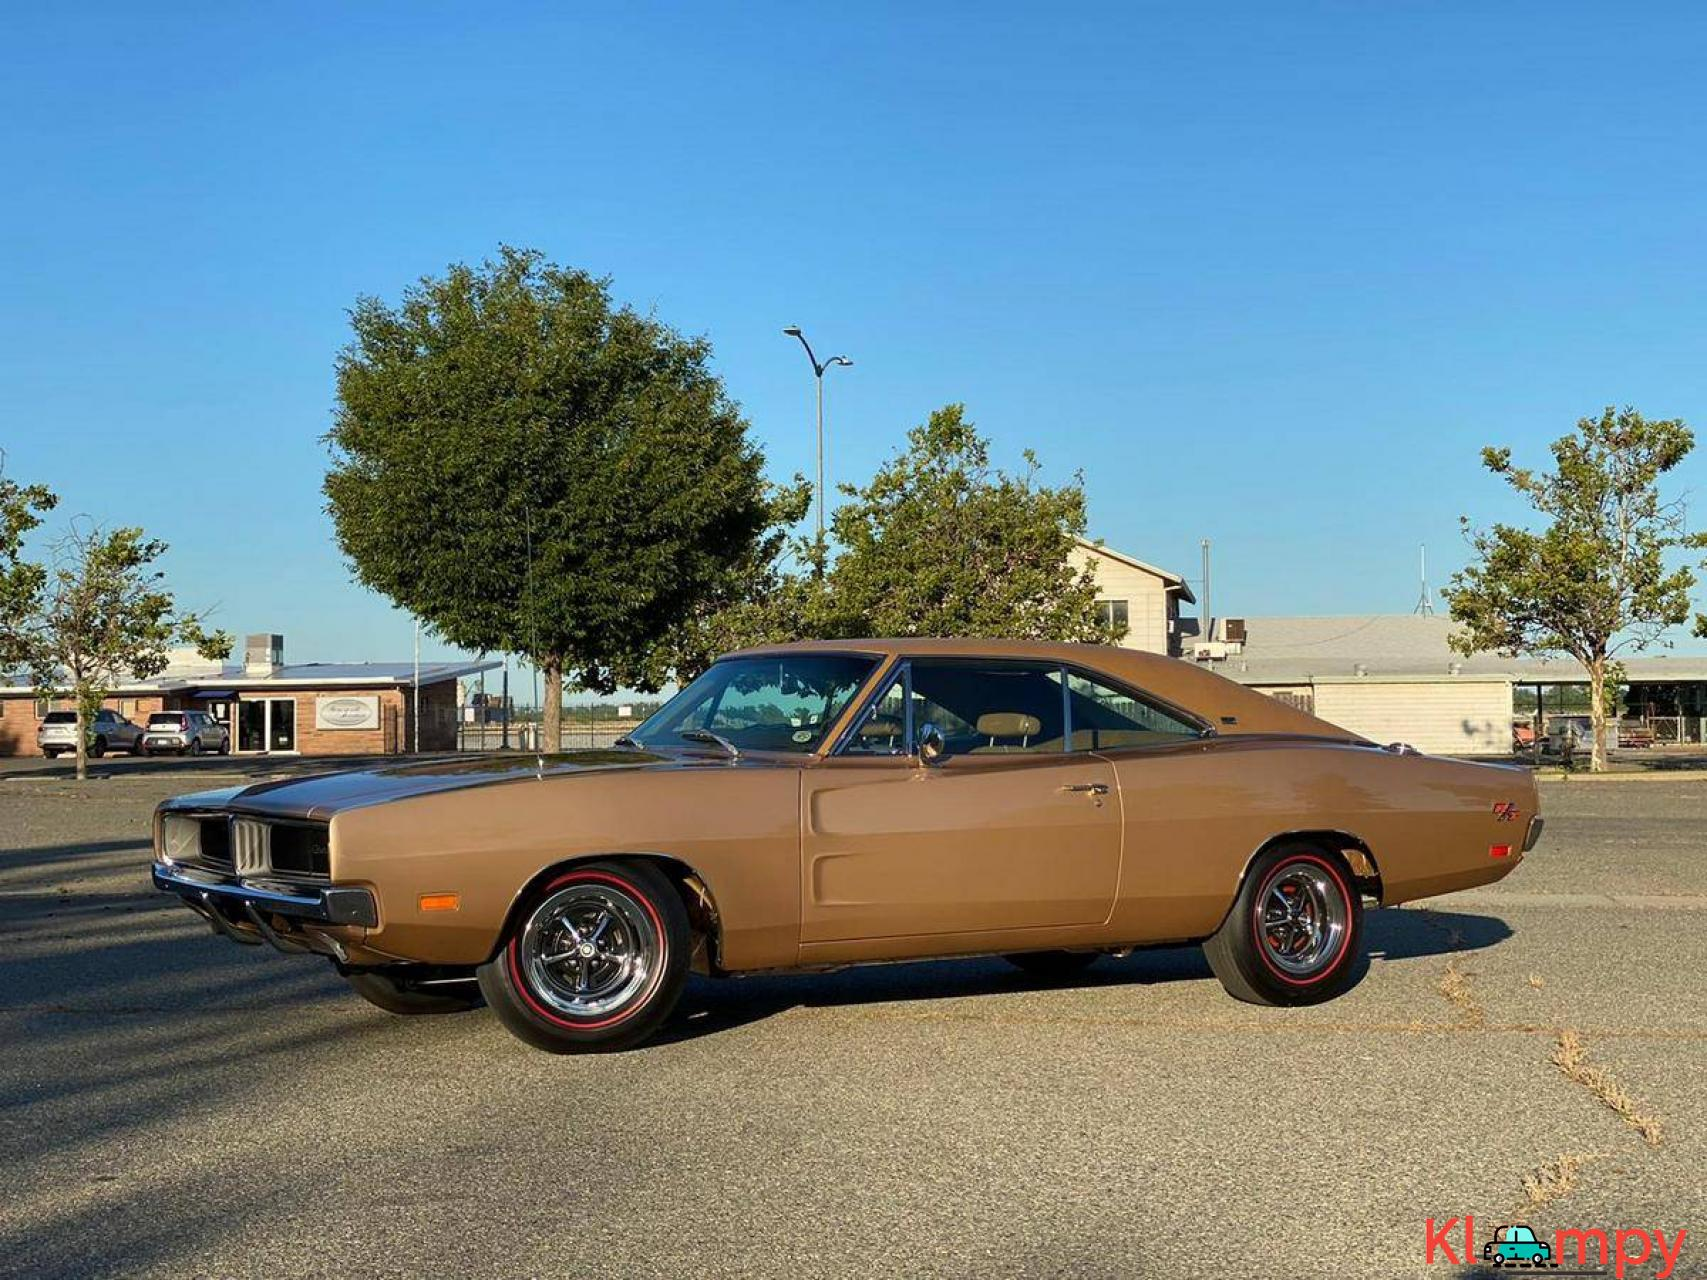 1969 Dodge Charger RT SE 440 375hp High Performance - 9/20